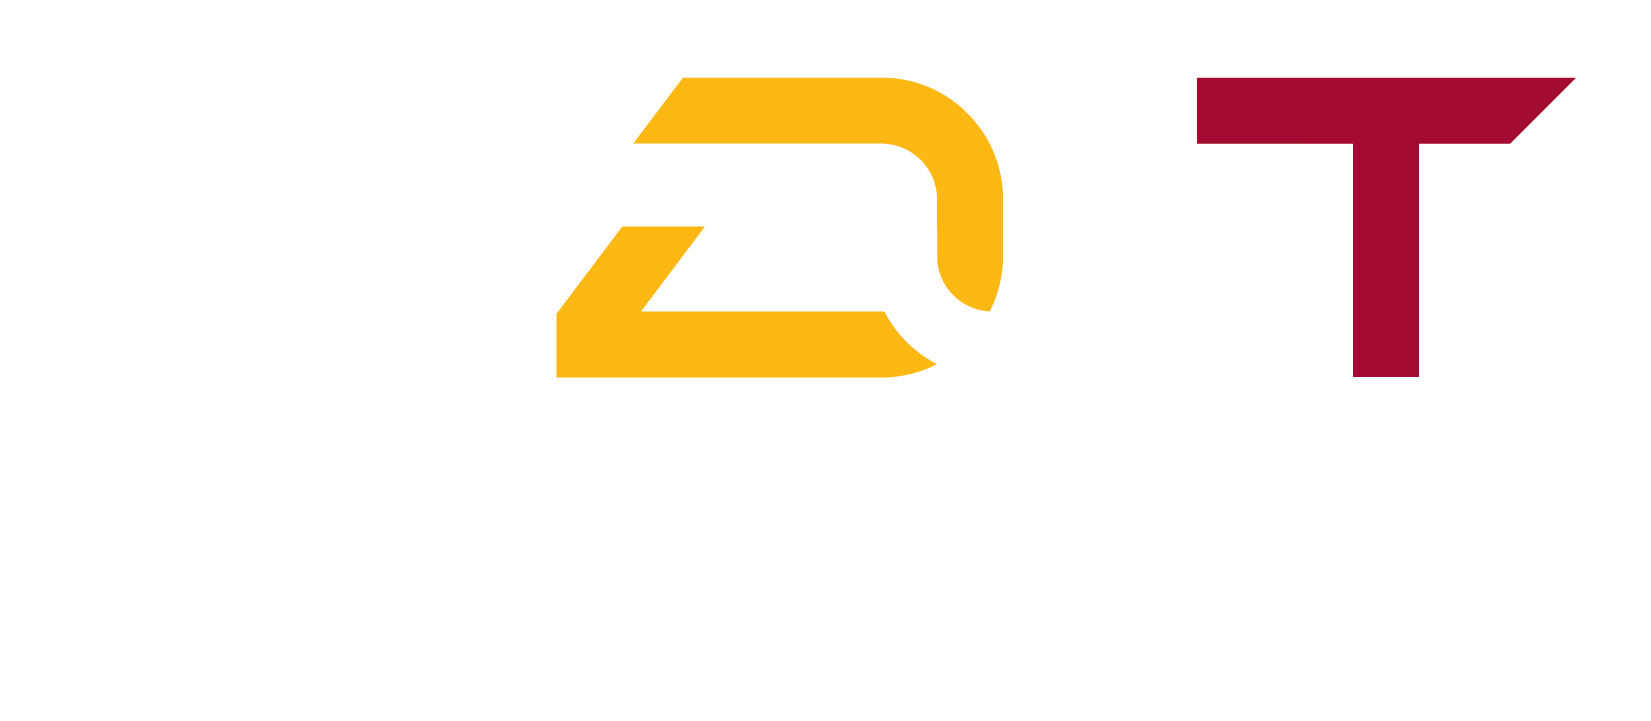 Transit-Oriented Development (TOD) in Maryland (MDOT